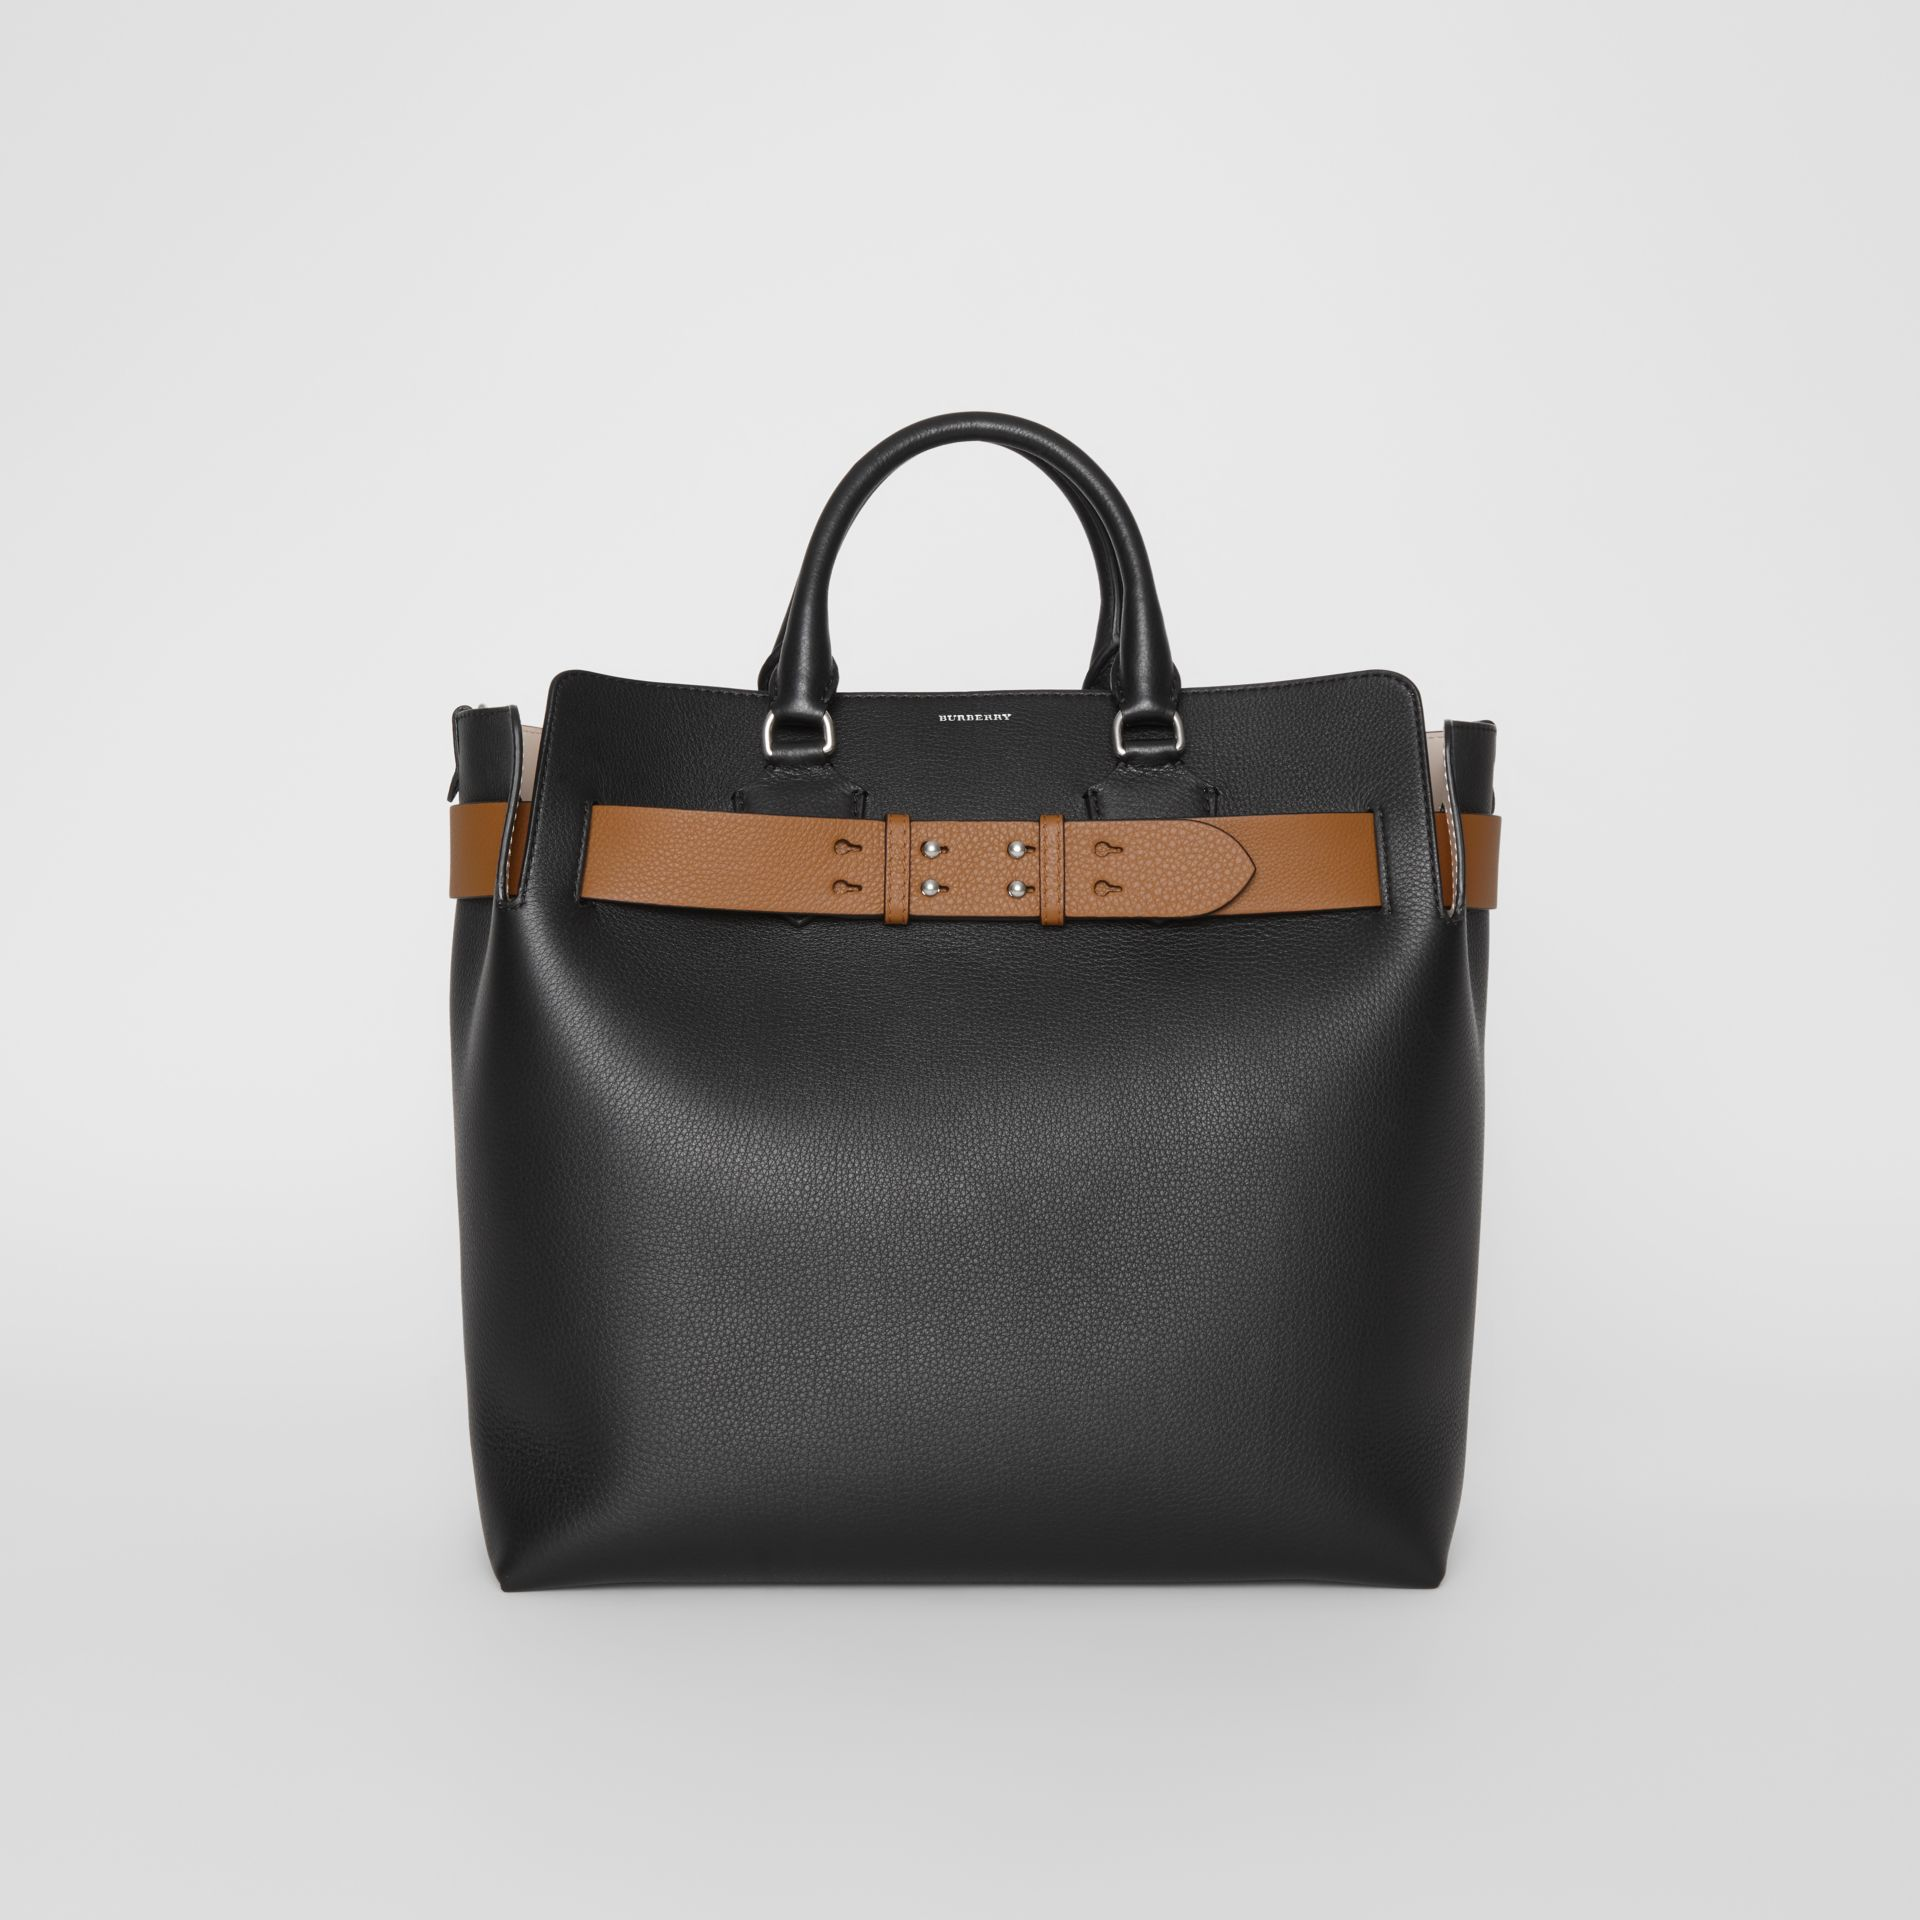 Burberry The Large Leather Belt Bag In Black. First seen in Oct 2018. 1 6 753b2a6997